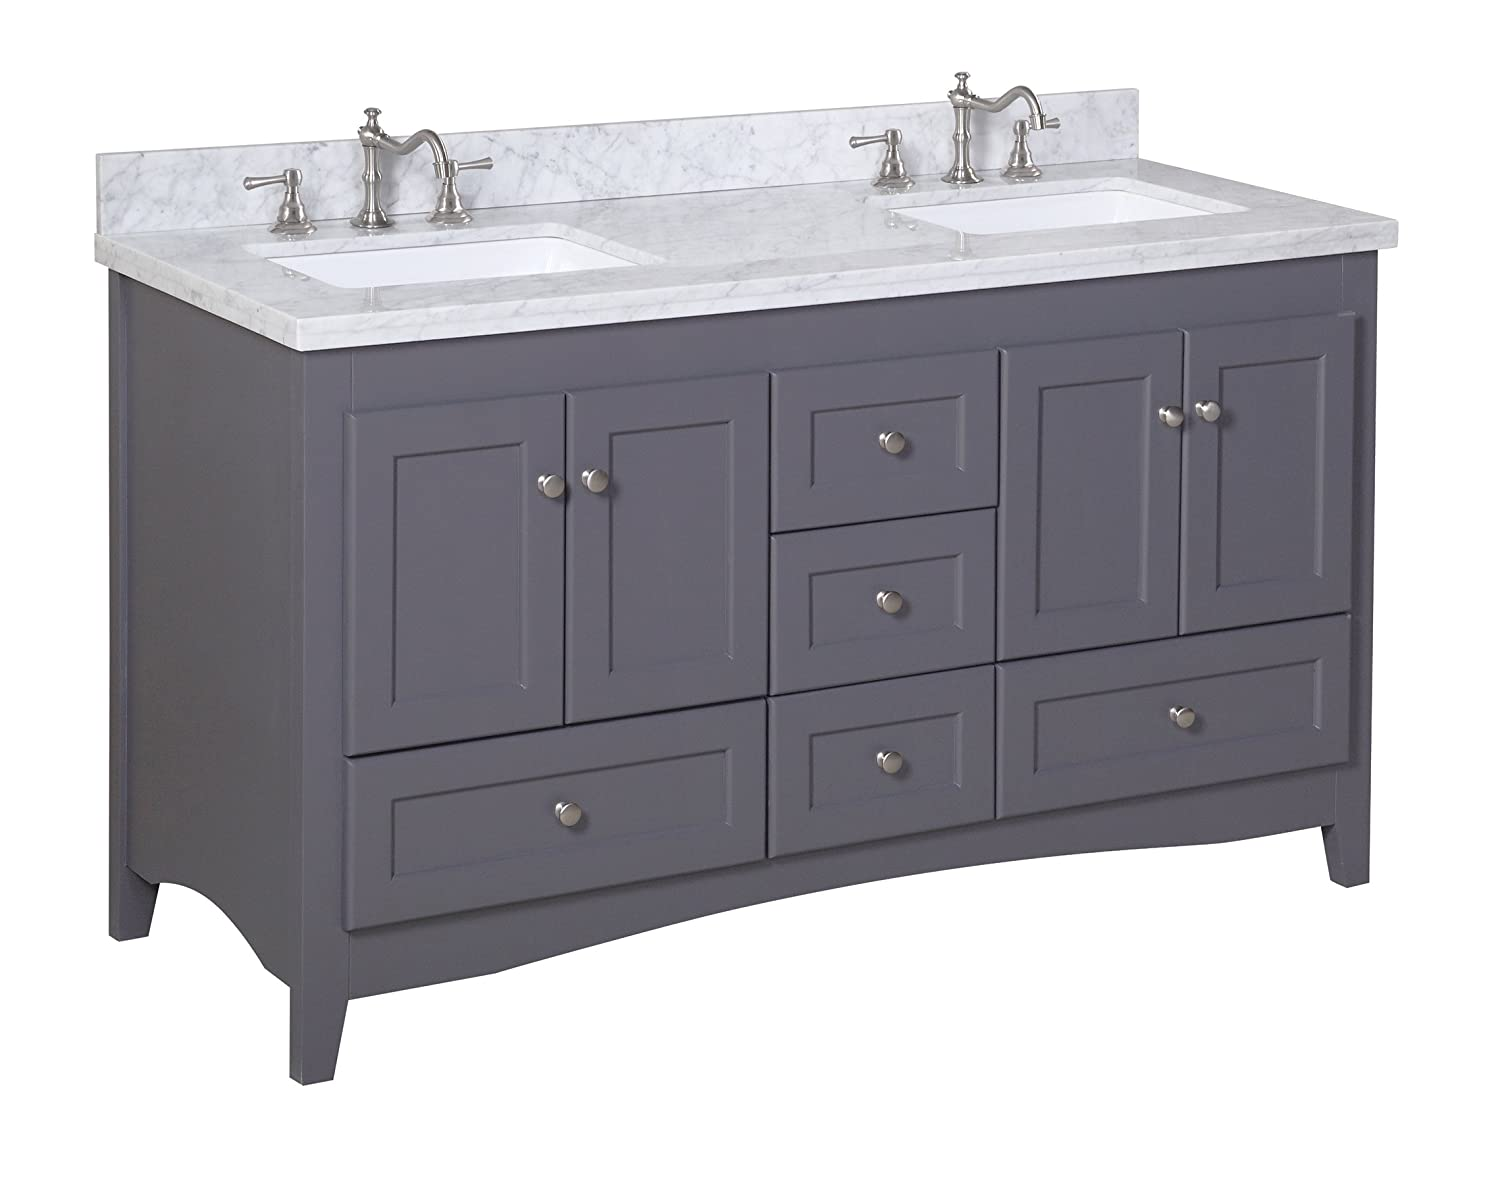 double bathroom vanity. Kitchen Bath Collection KBC38602GYCARR D Abbey Double Sink Bathroom Vanity  with Marble Countertop Cabinet Soft Close Function and Undermount Ceramic